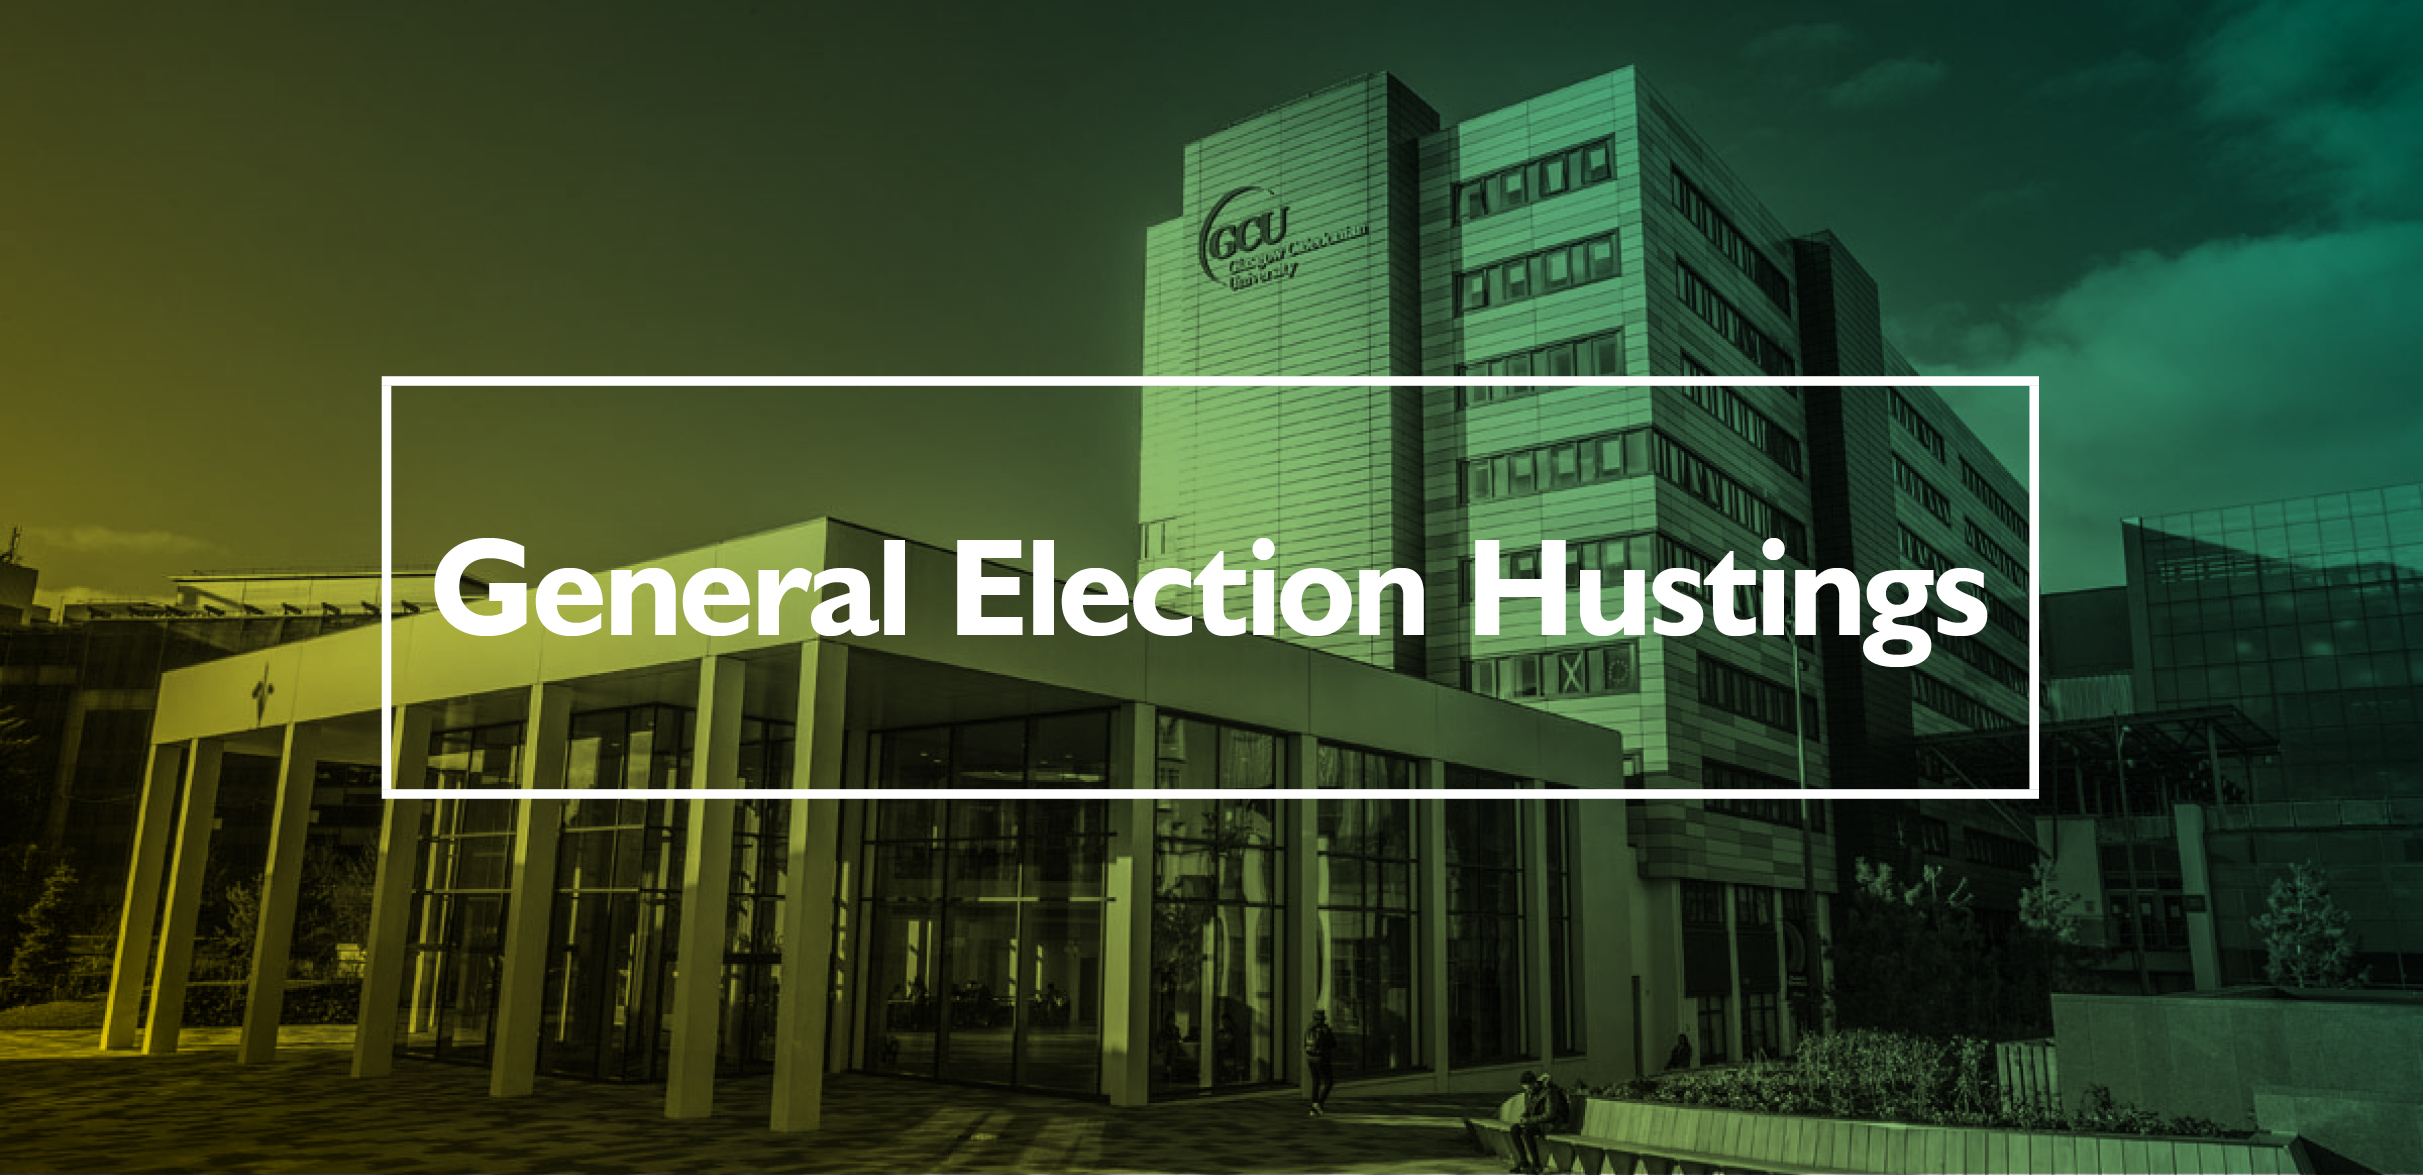 General Election hustings image